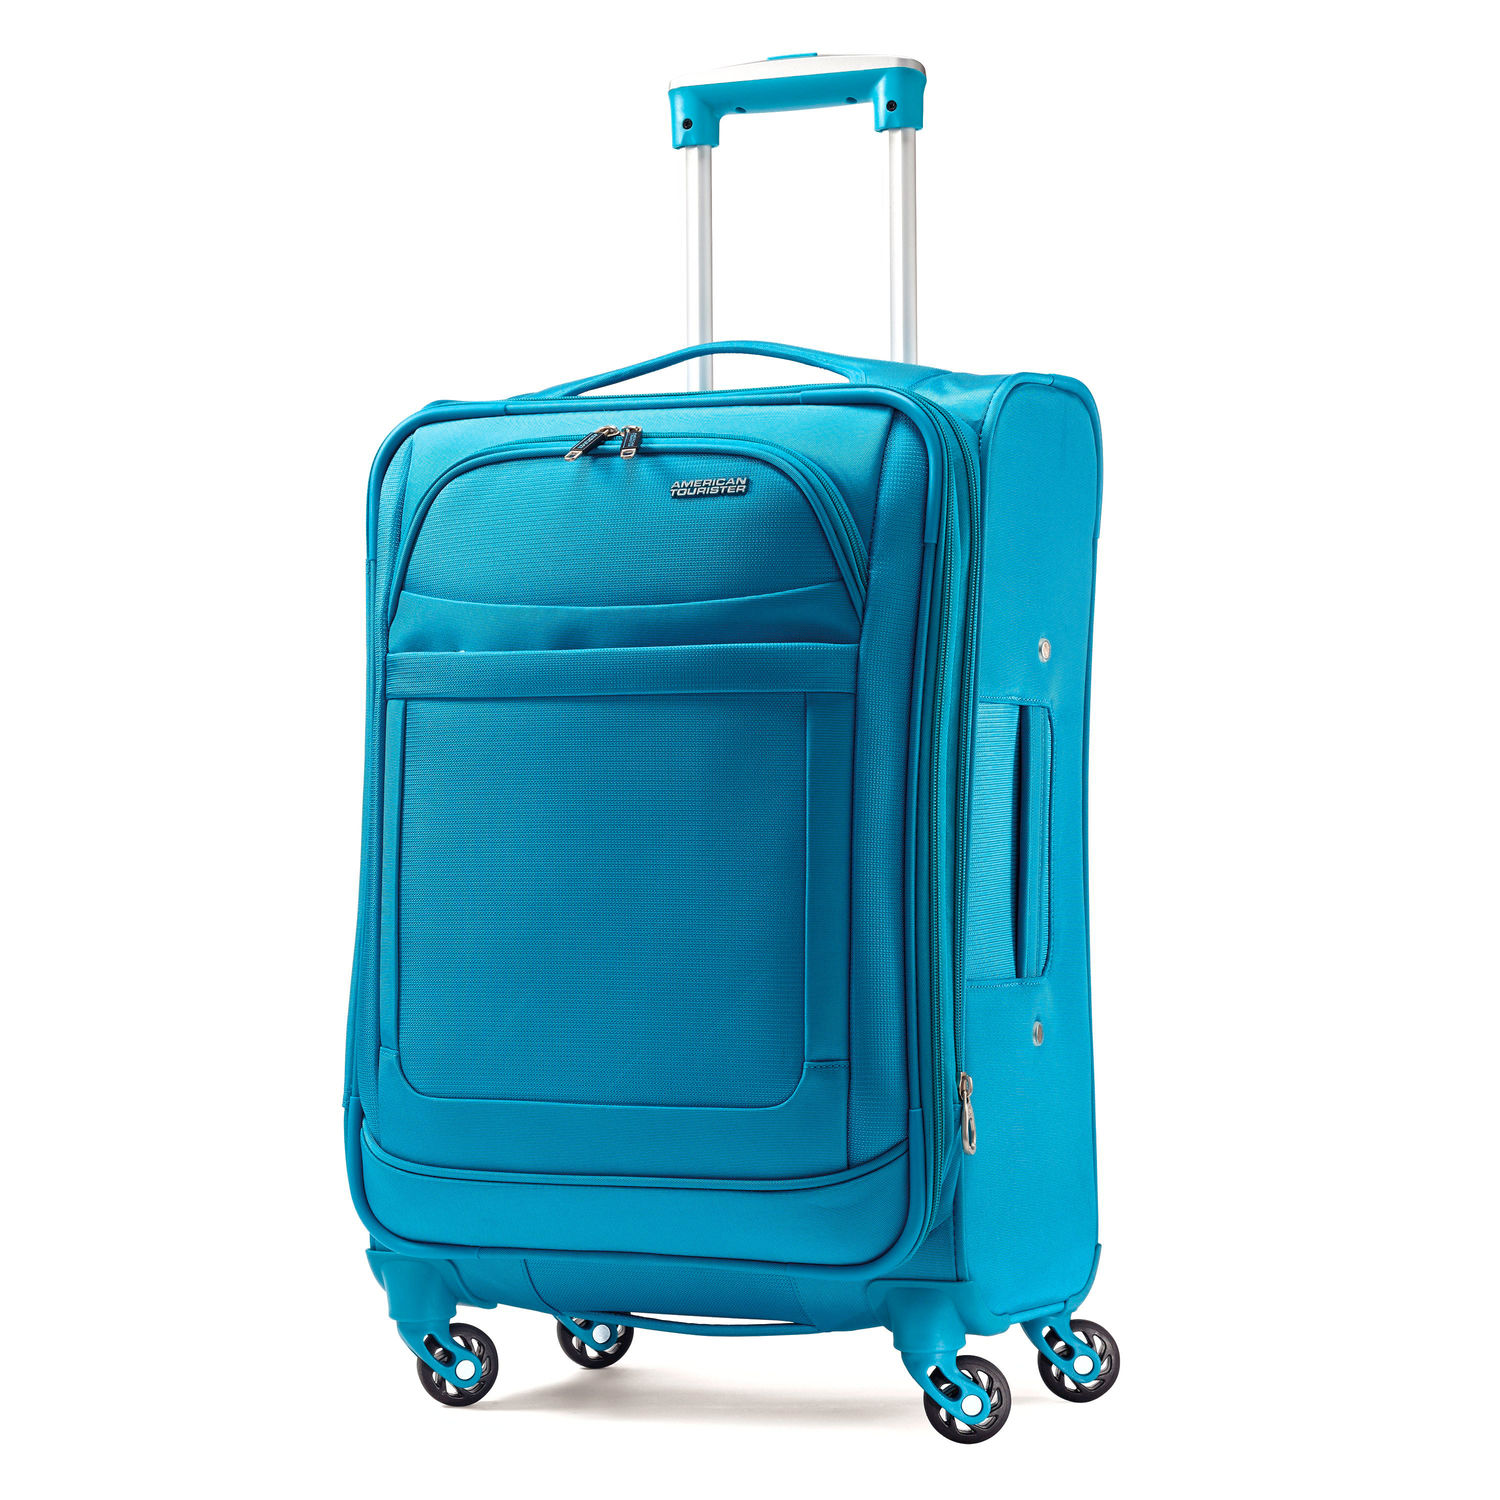 bright luggage how to never lose suitcase blue rolling american tourister